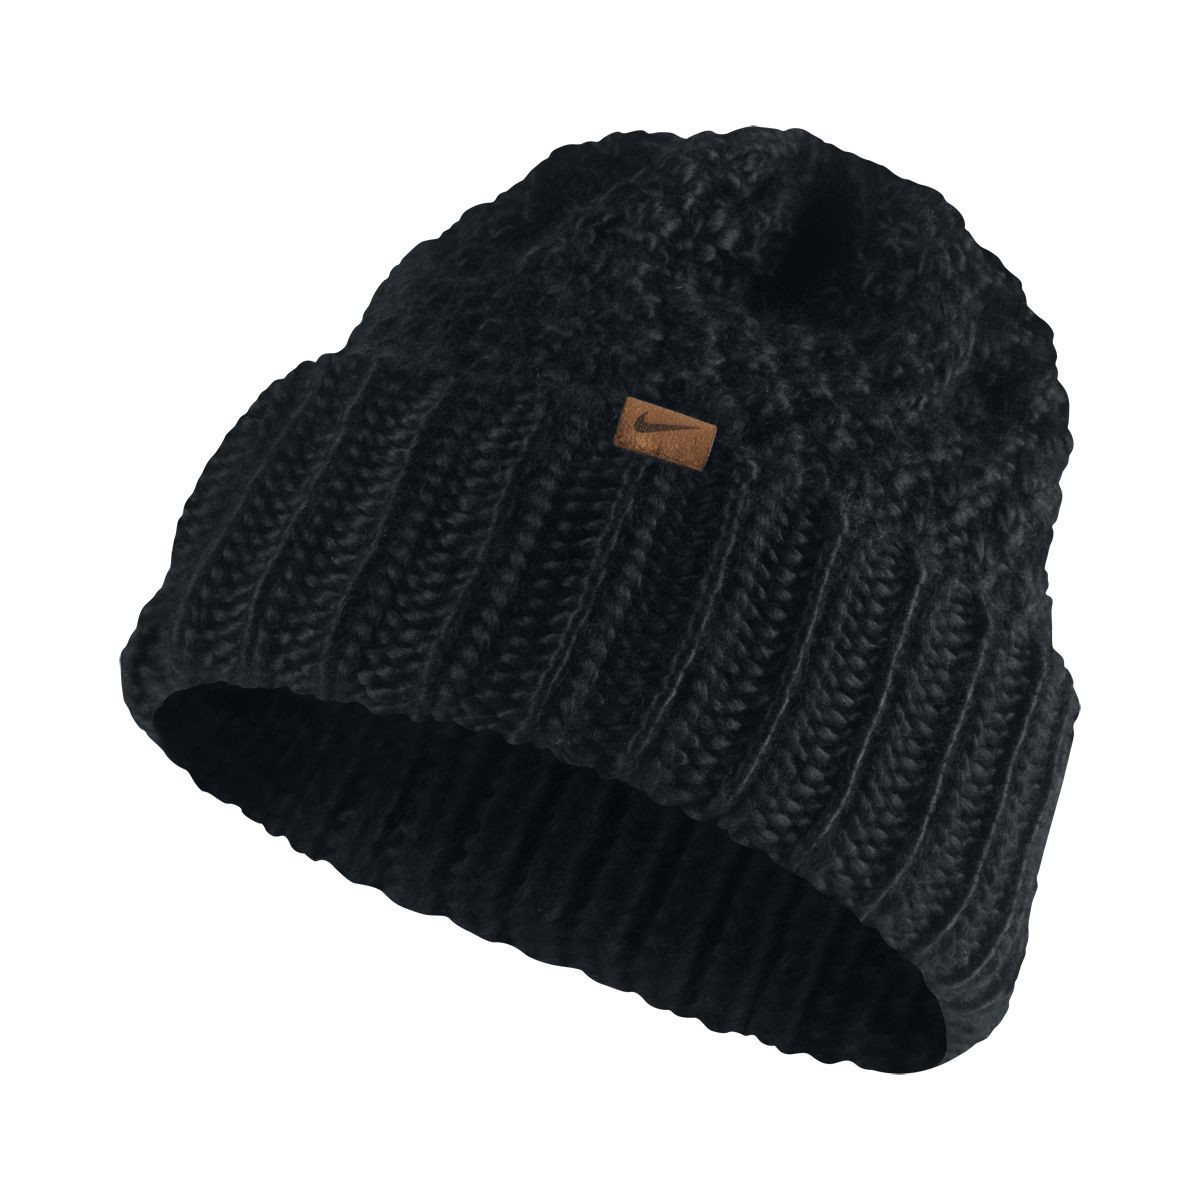 Womens Knit Hats Lovely Nike Women S Cuff Knit Hat Of Innovative 50 Images Womens Knit Hats